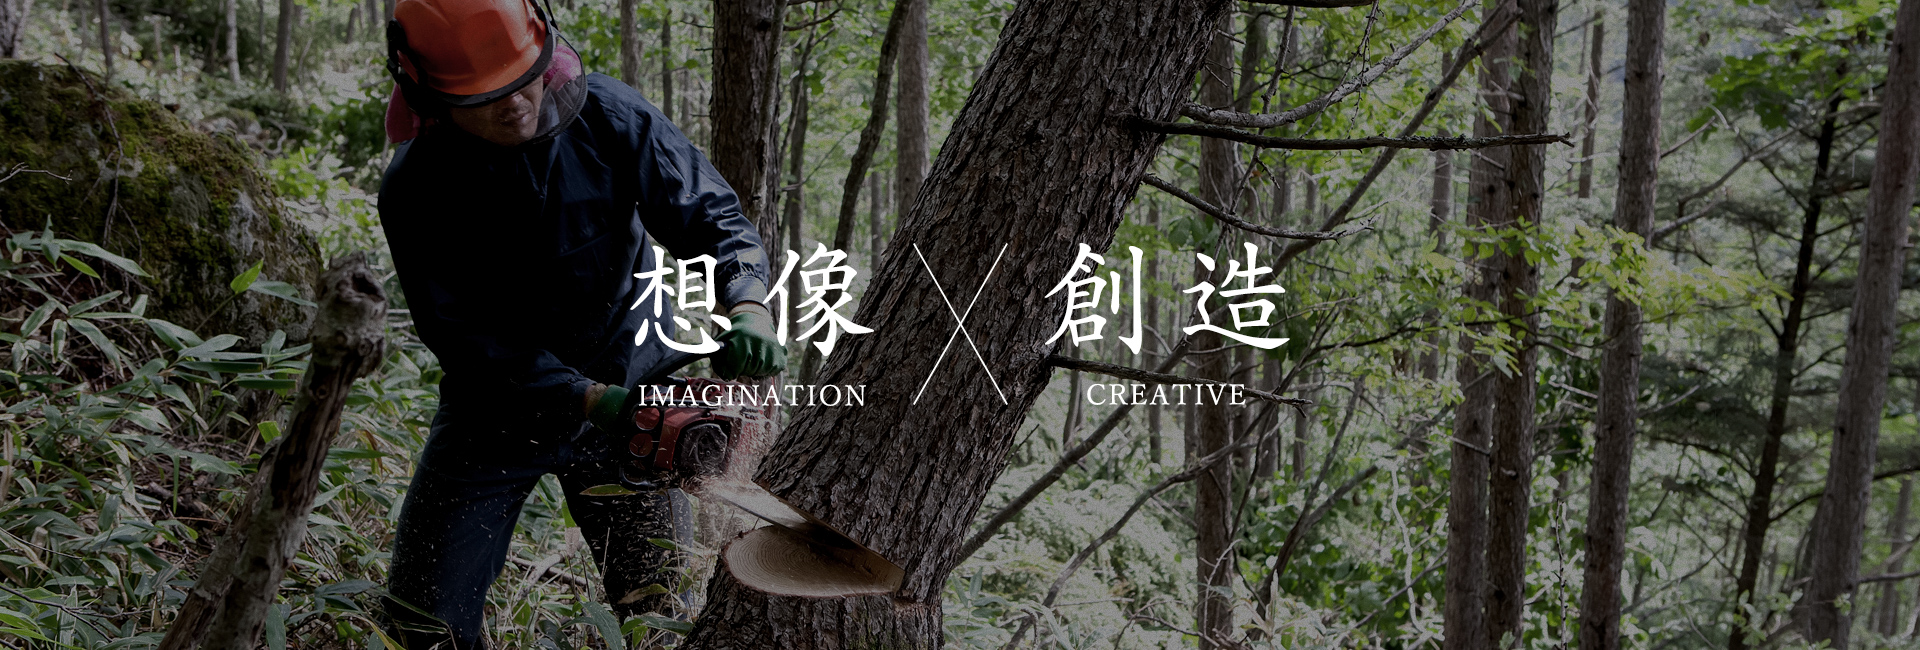 創造×創造 IMAGINATION×CREATIVE